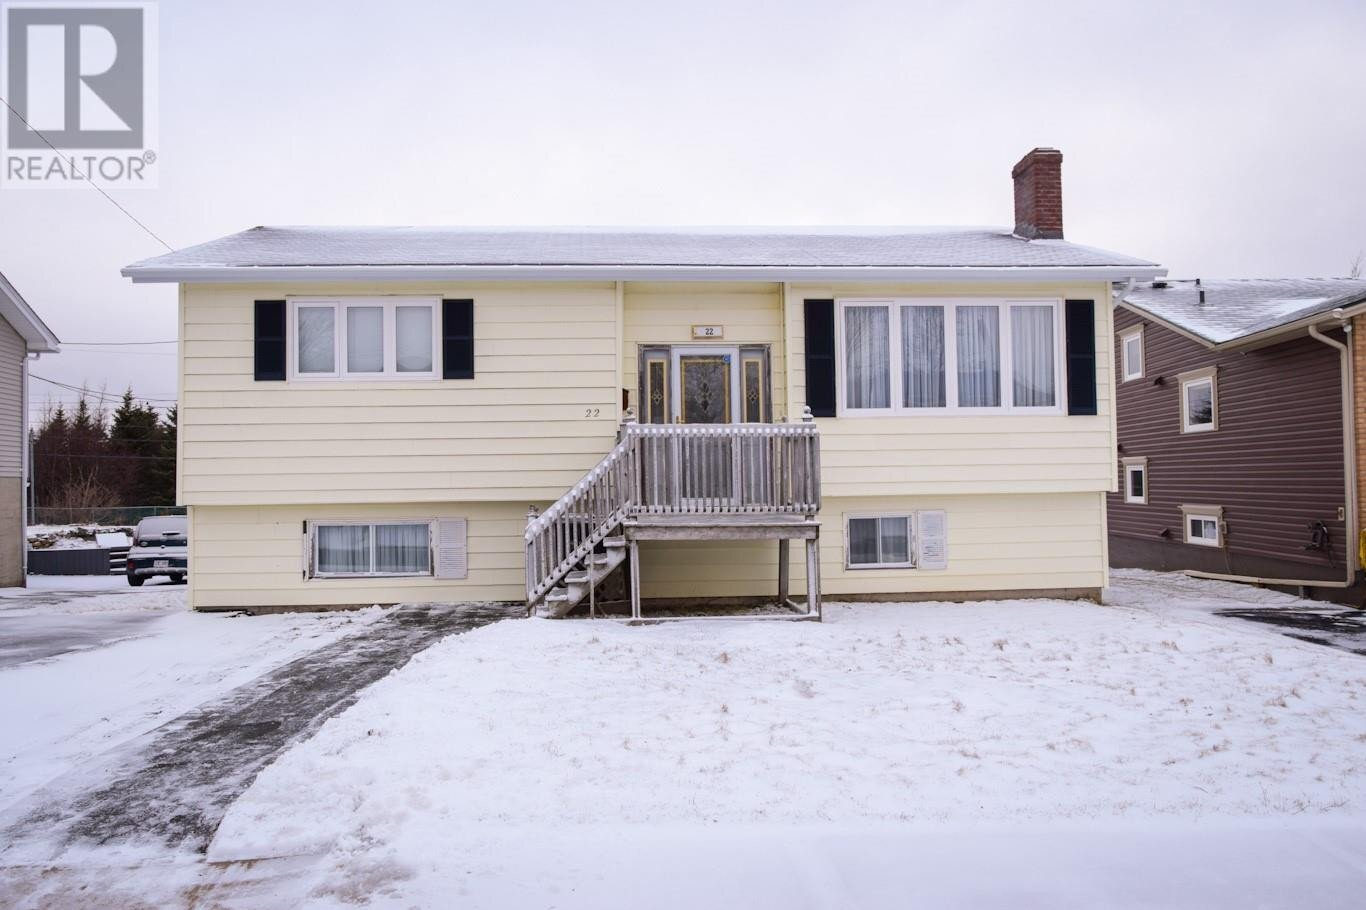 House for sale at 22 Donovan St Mt. Pearl Newfoundland - MLS: 1224621